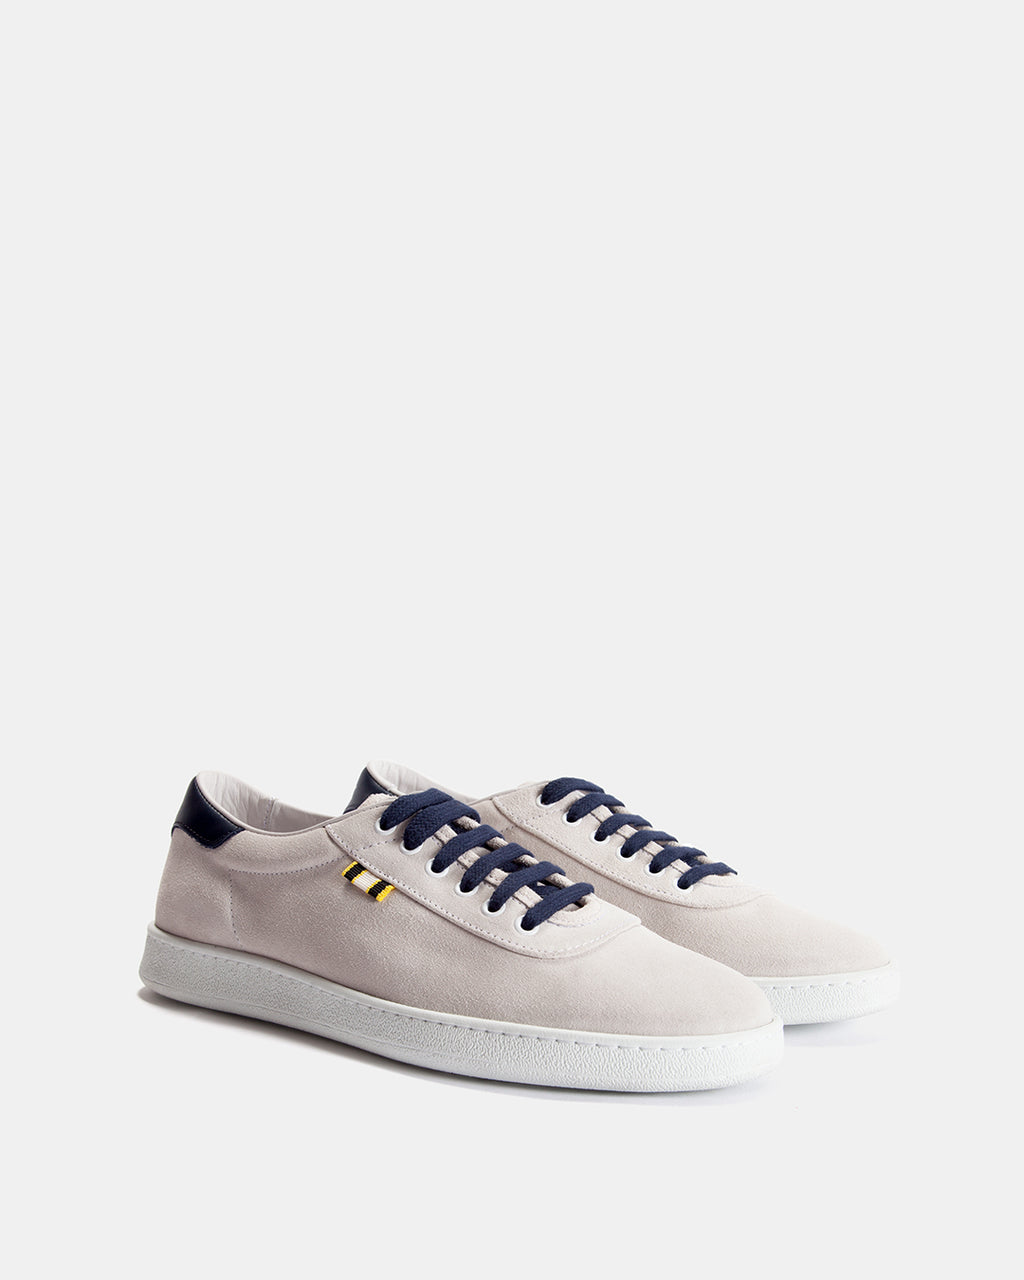 APR002 - Suede - White/Navy